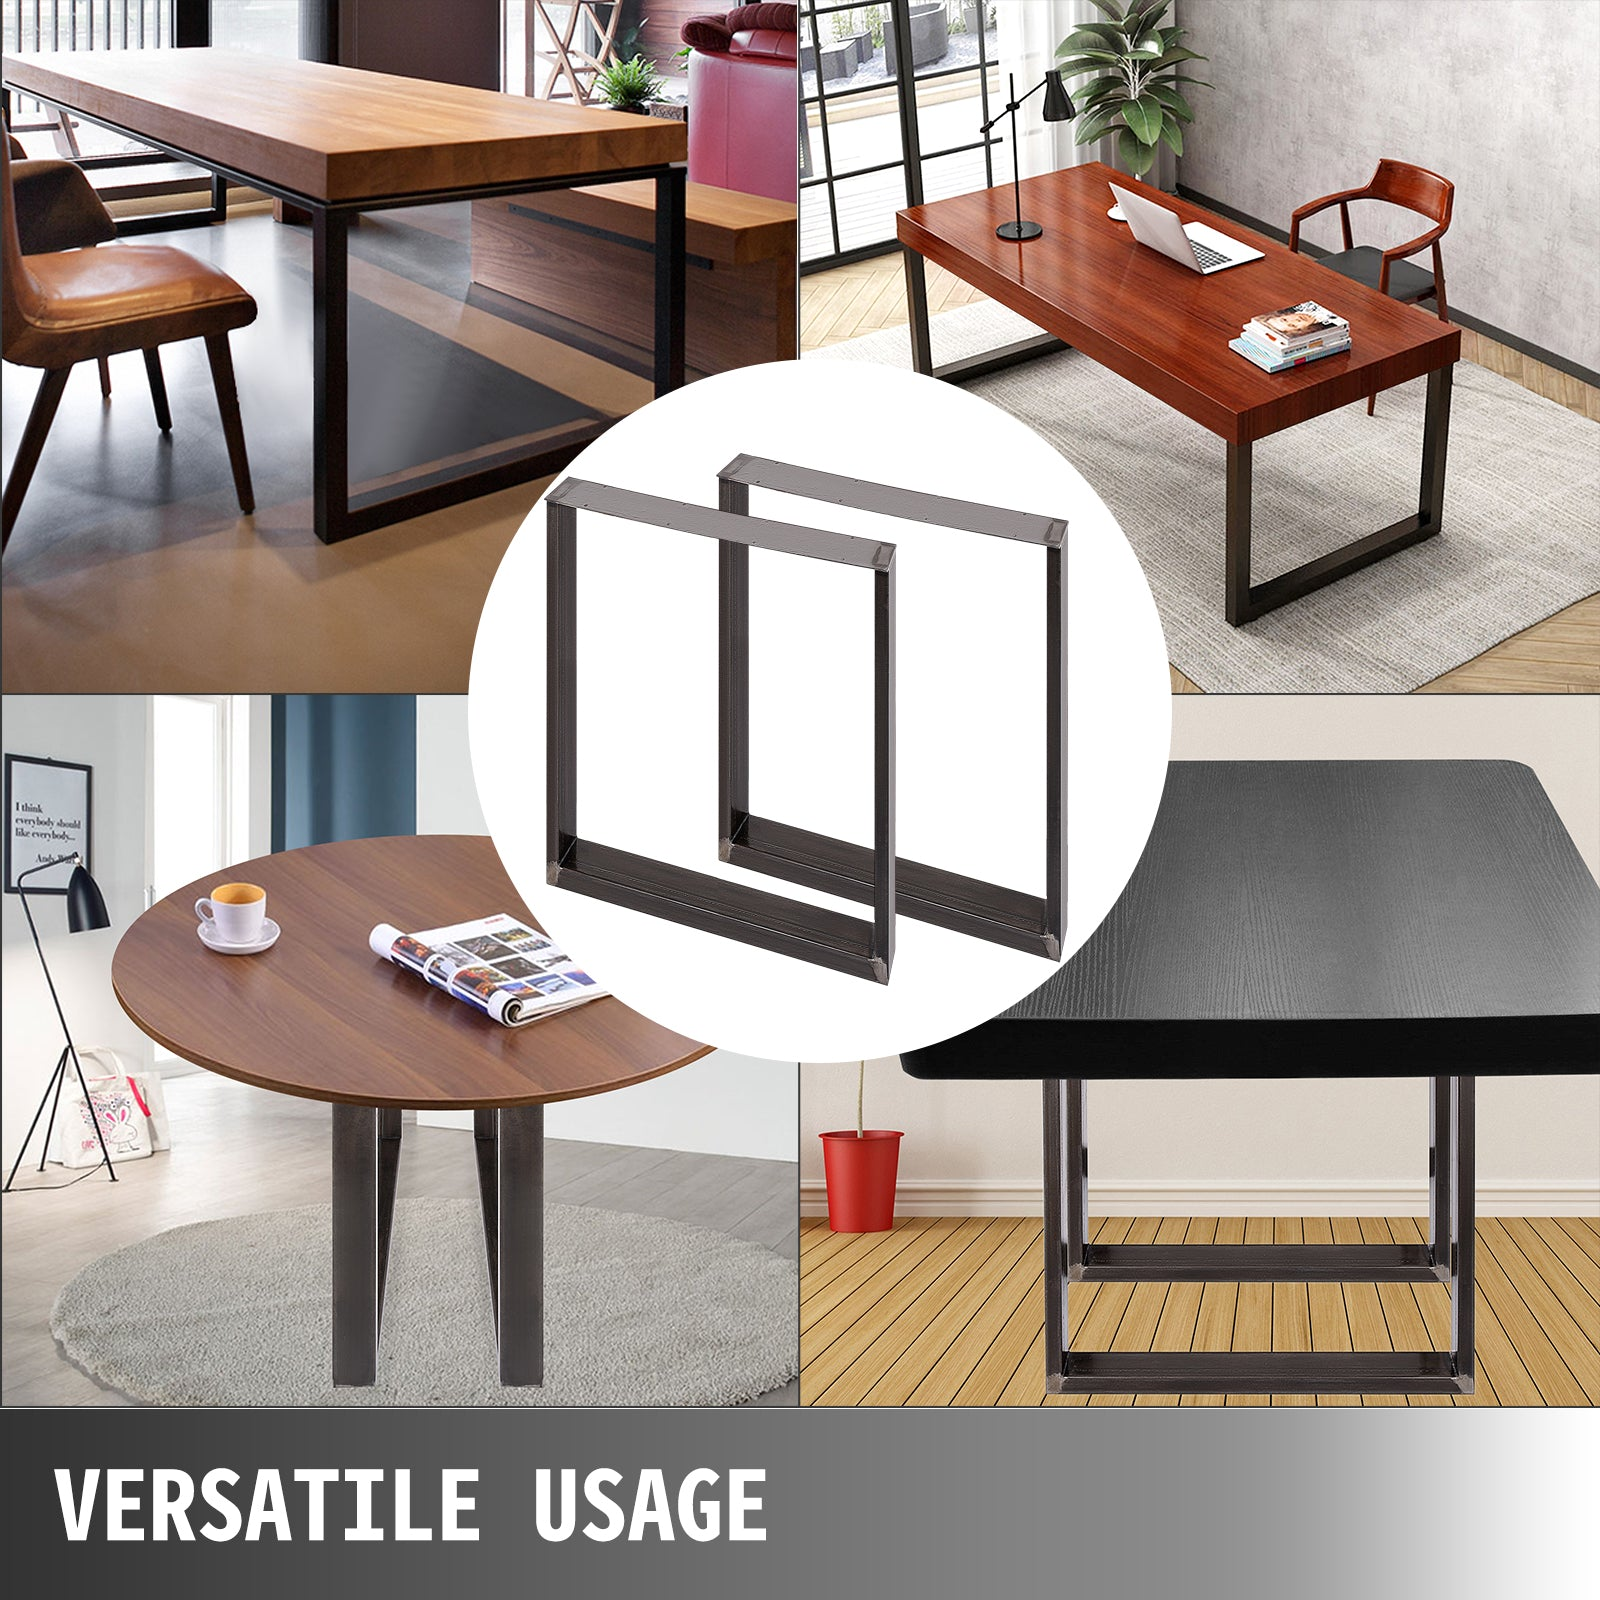 2x Pieds De Table Rectangulaire 40 X 43 Cm Table De Café Moderne Banc Café Banc